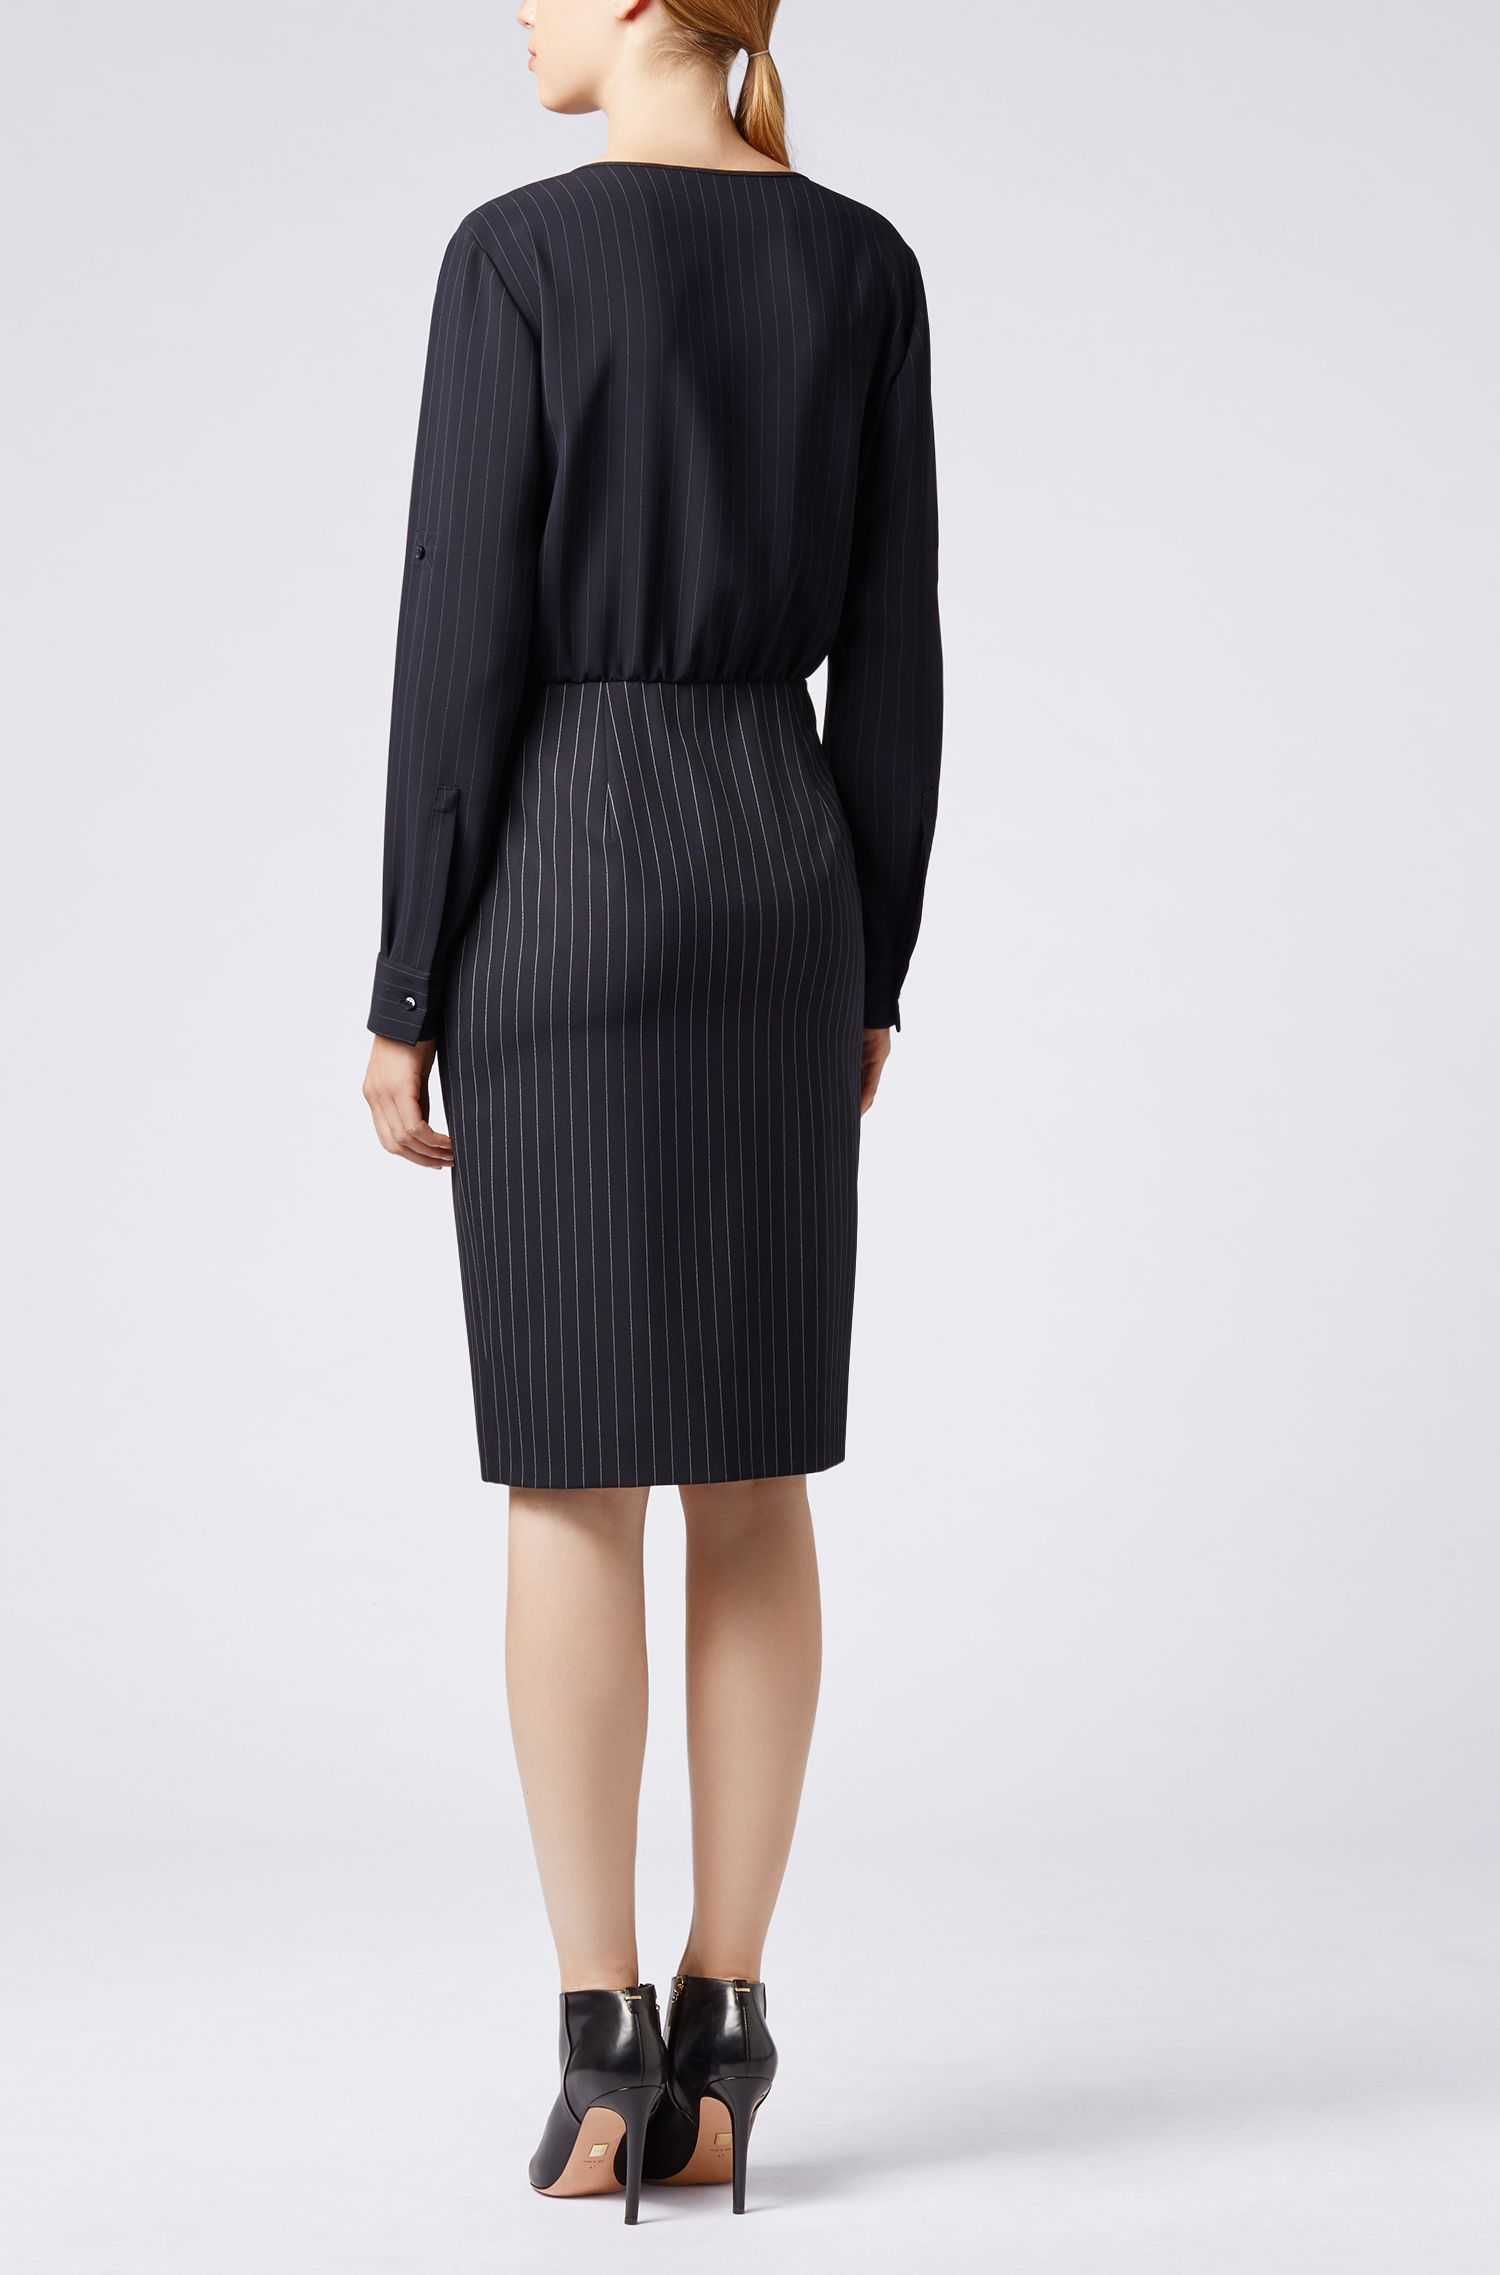 Pinstripe dress with blouse-style upper section